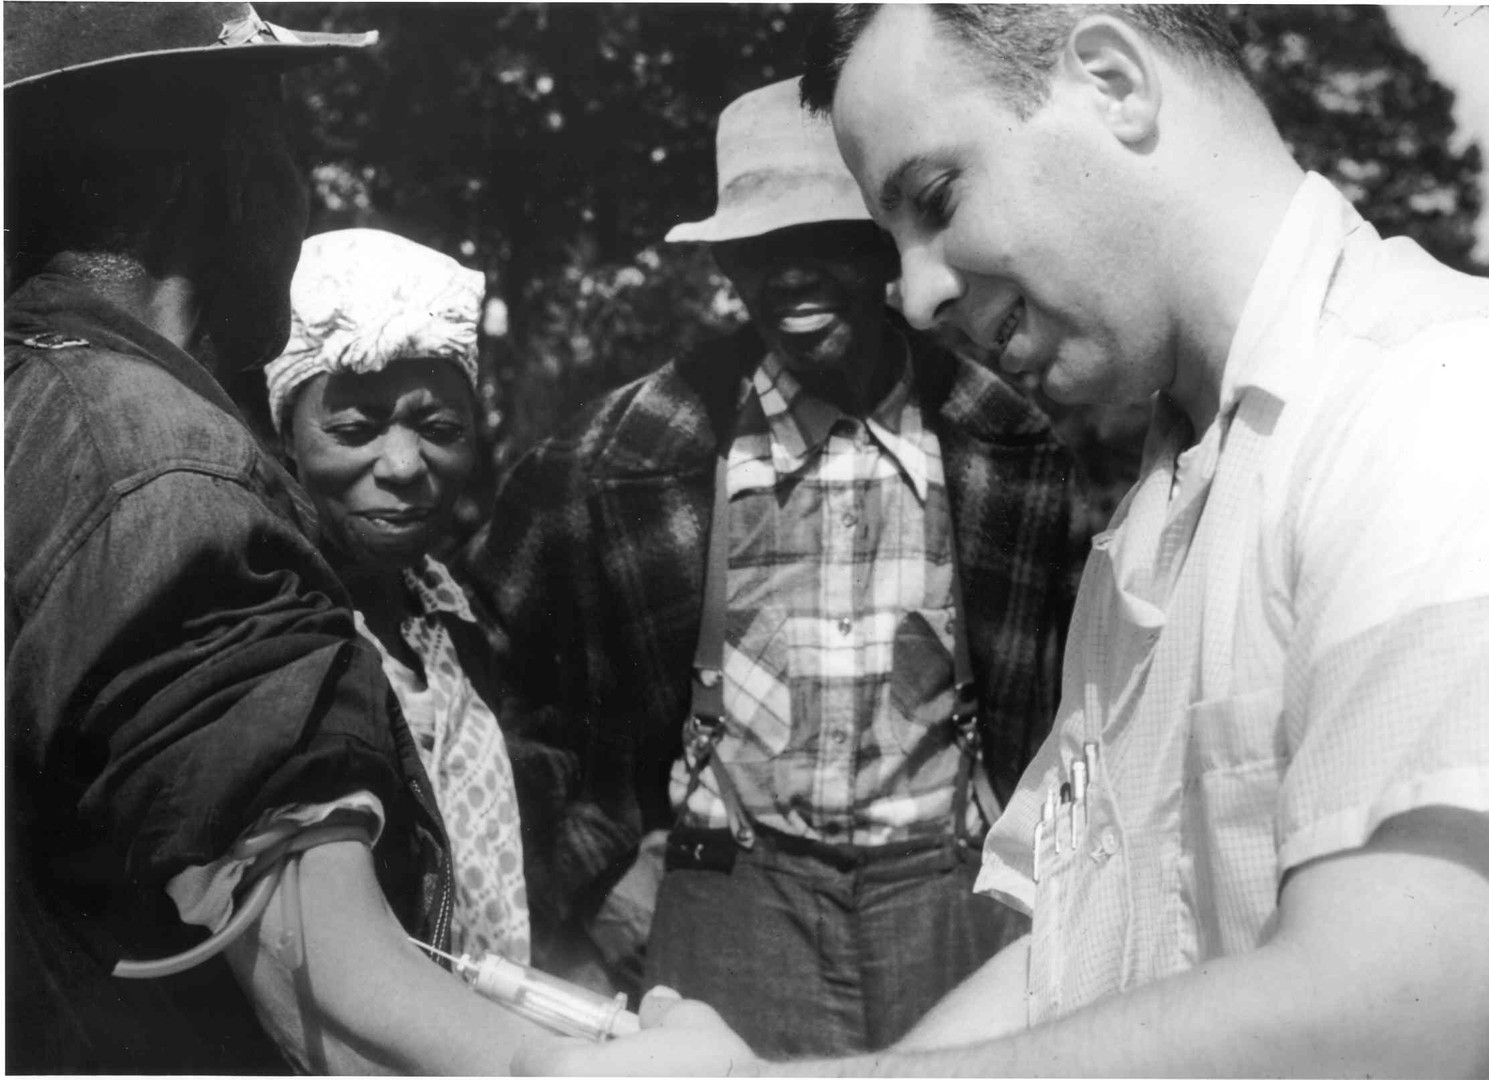 Tuskegee-syphilis-study_doctor-injecting